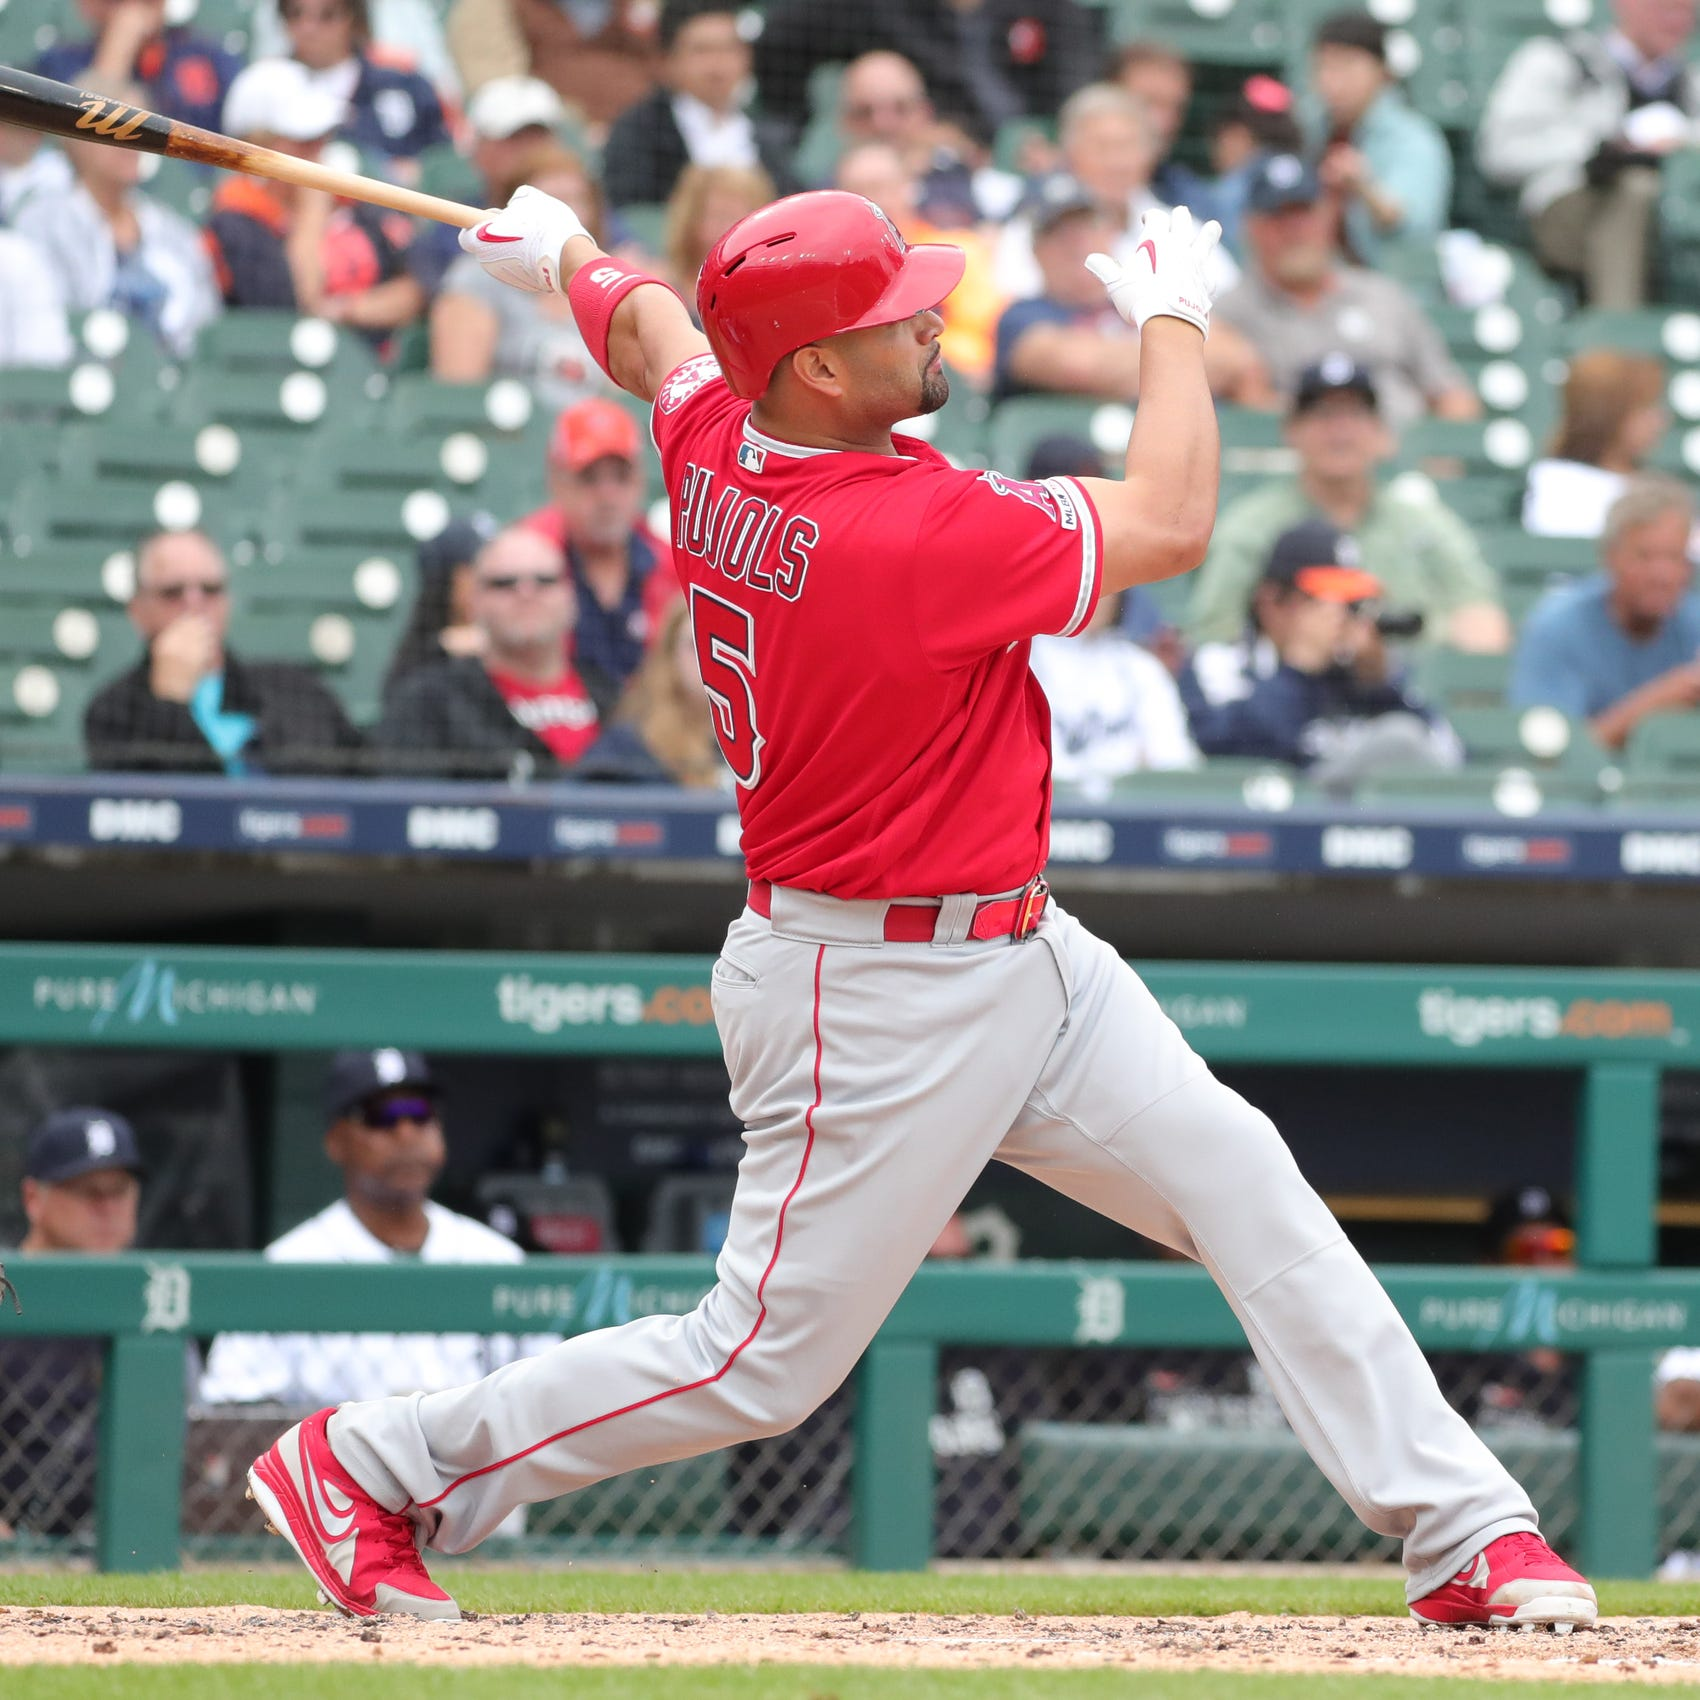 Fan may give Albert Pujols' 2,000 RBI ball away, give up $25K payday